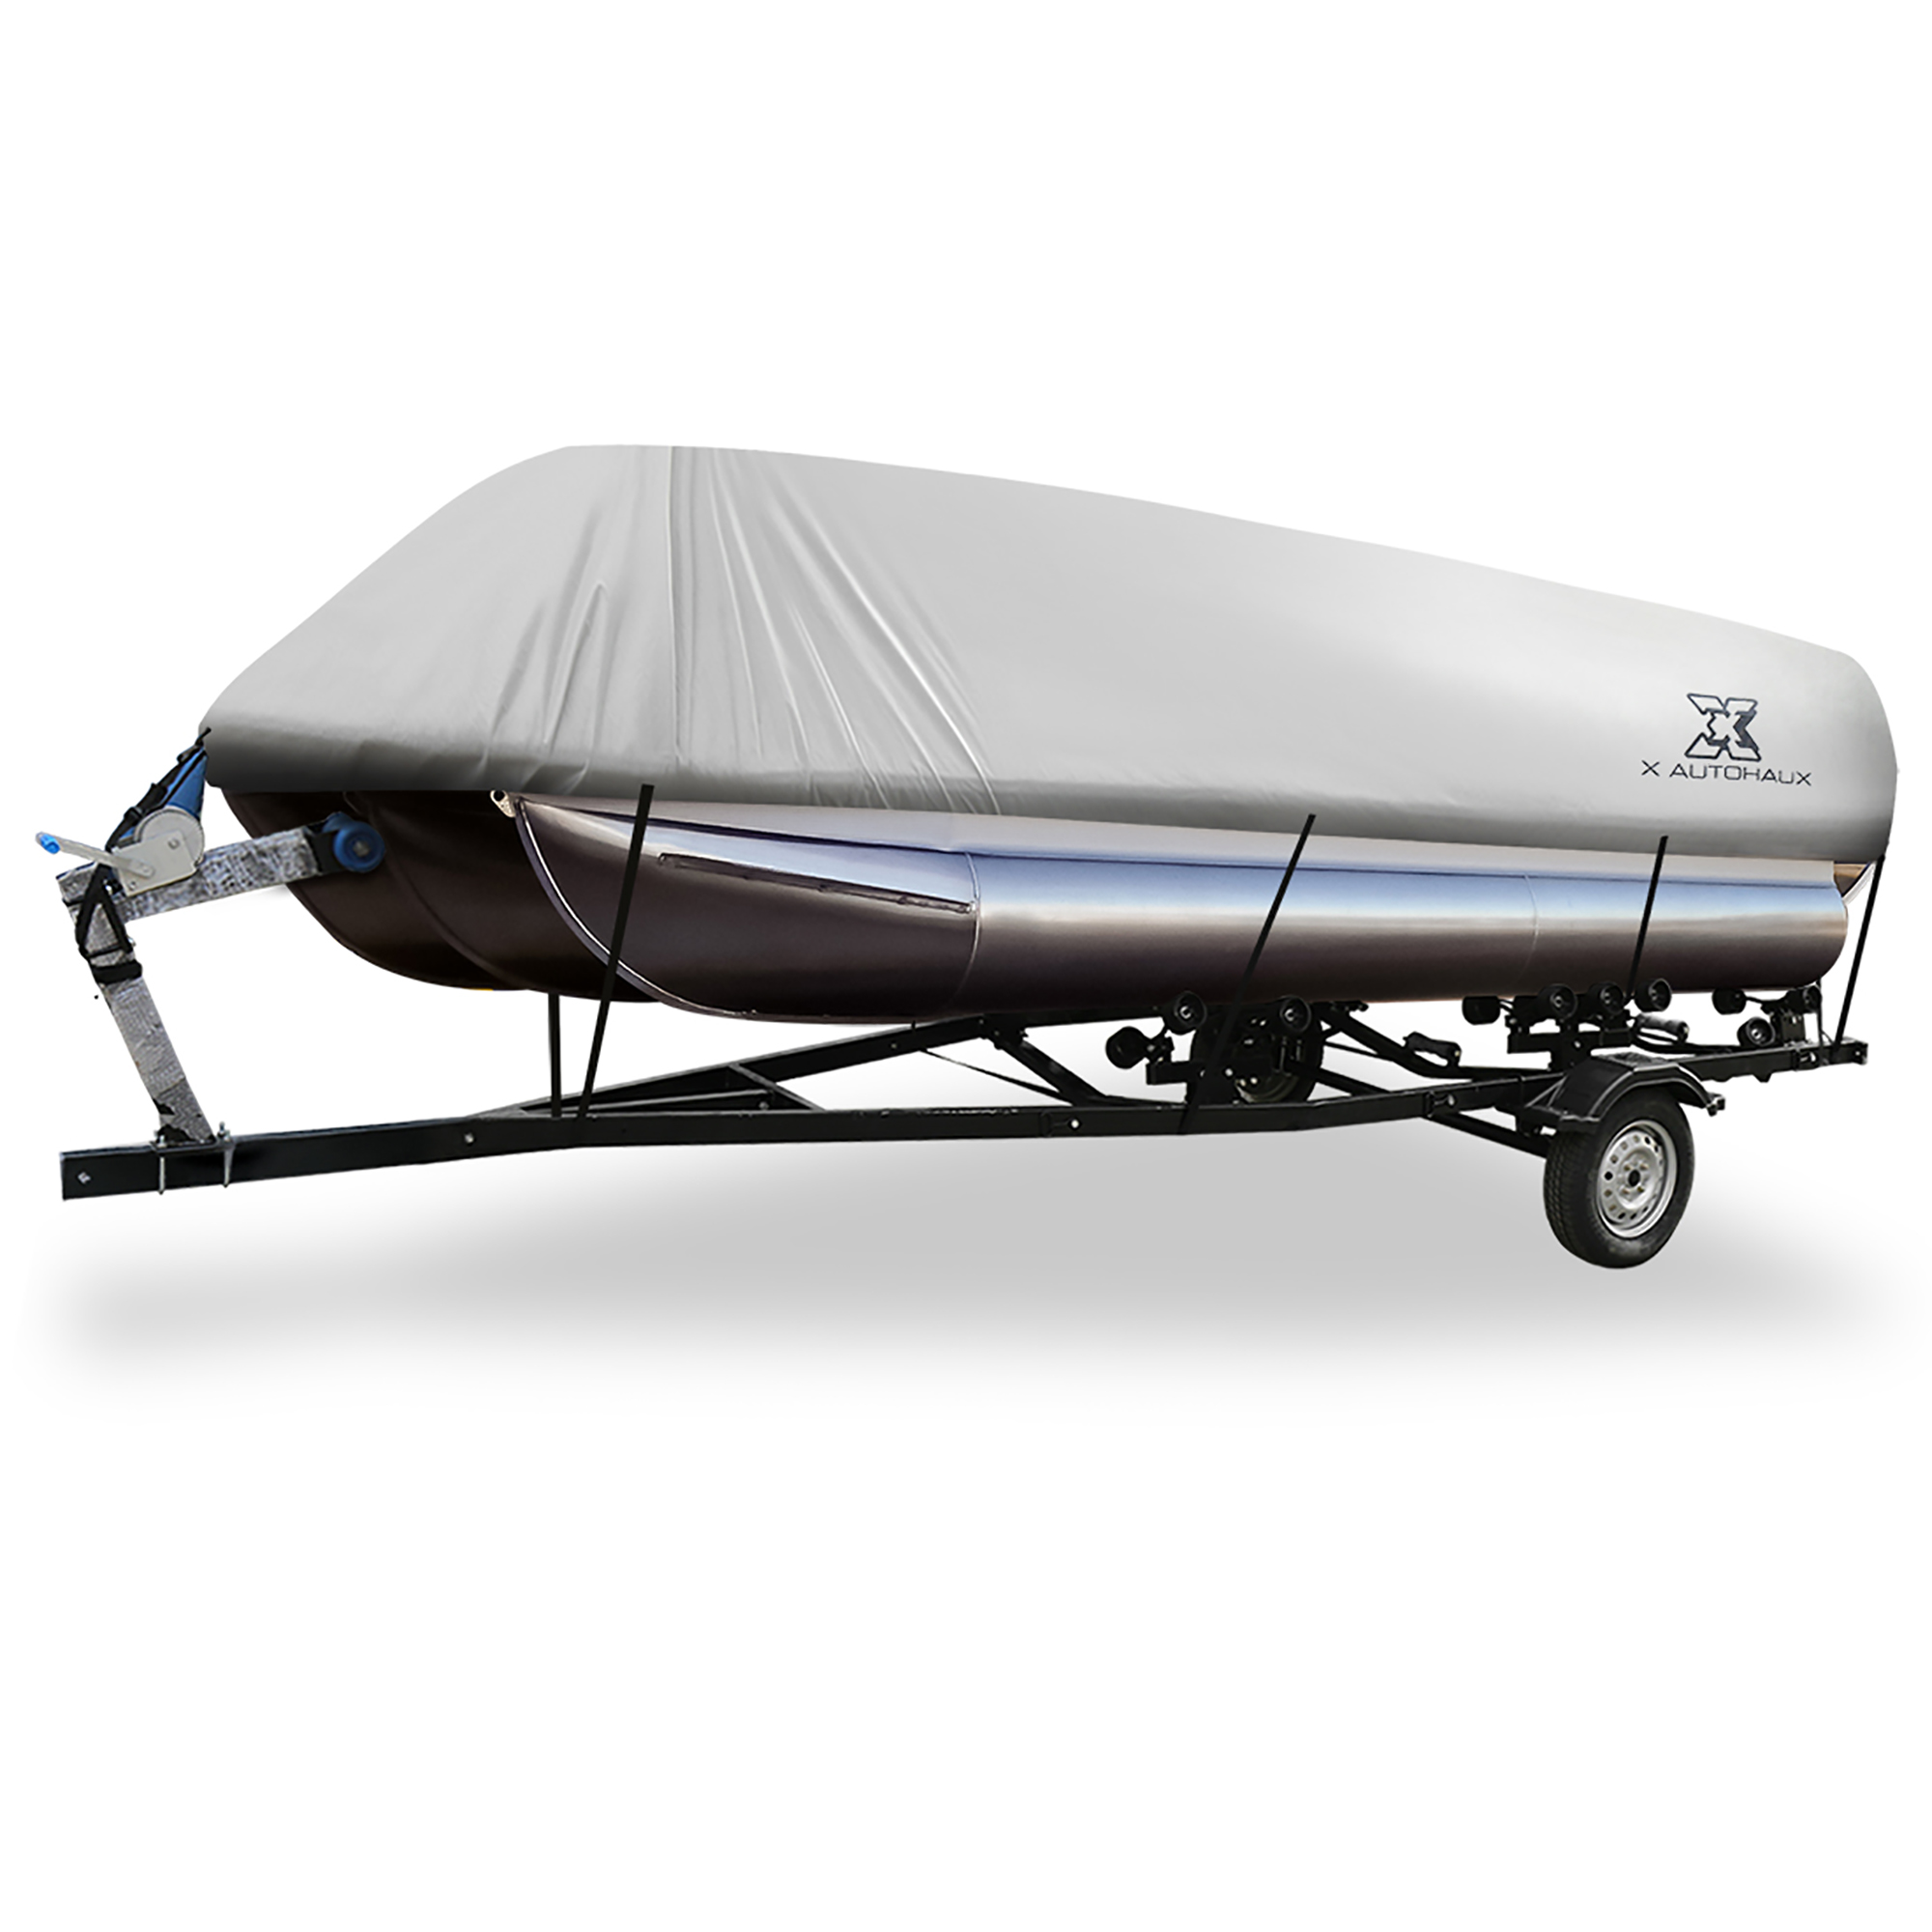 Gray 17-20ft 300D Boat Cover Waterproof Trailerable for Square Shape Boats